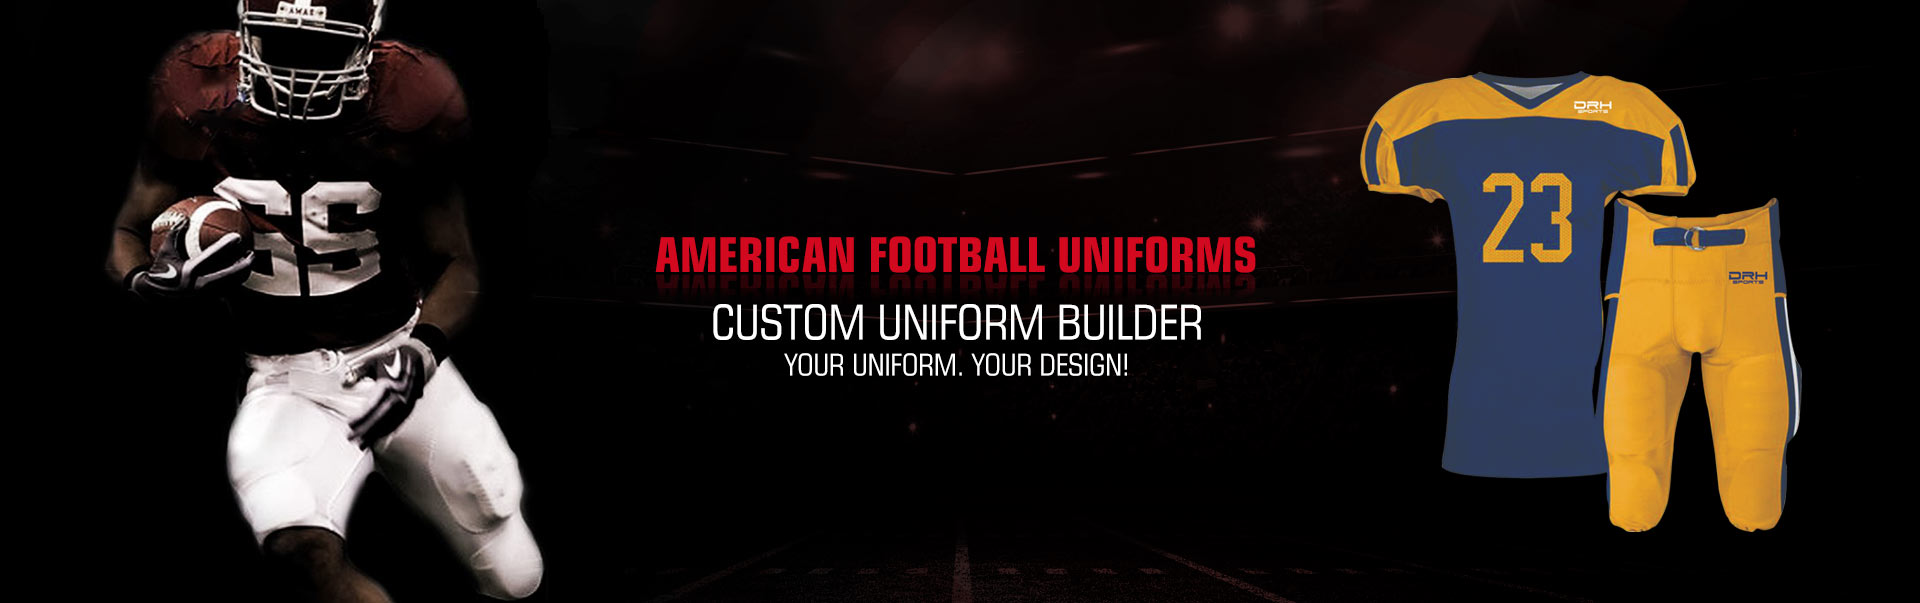 American Football Uniform Wholesaler, Suppliers in Bendigo